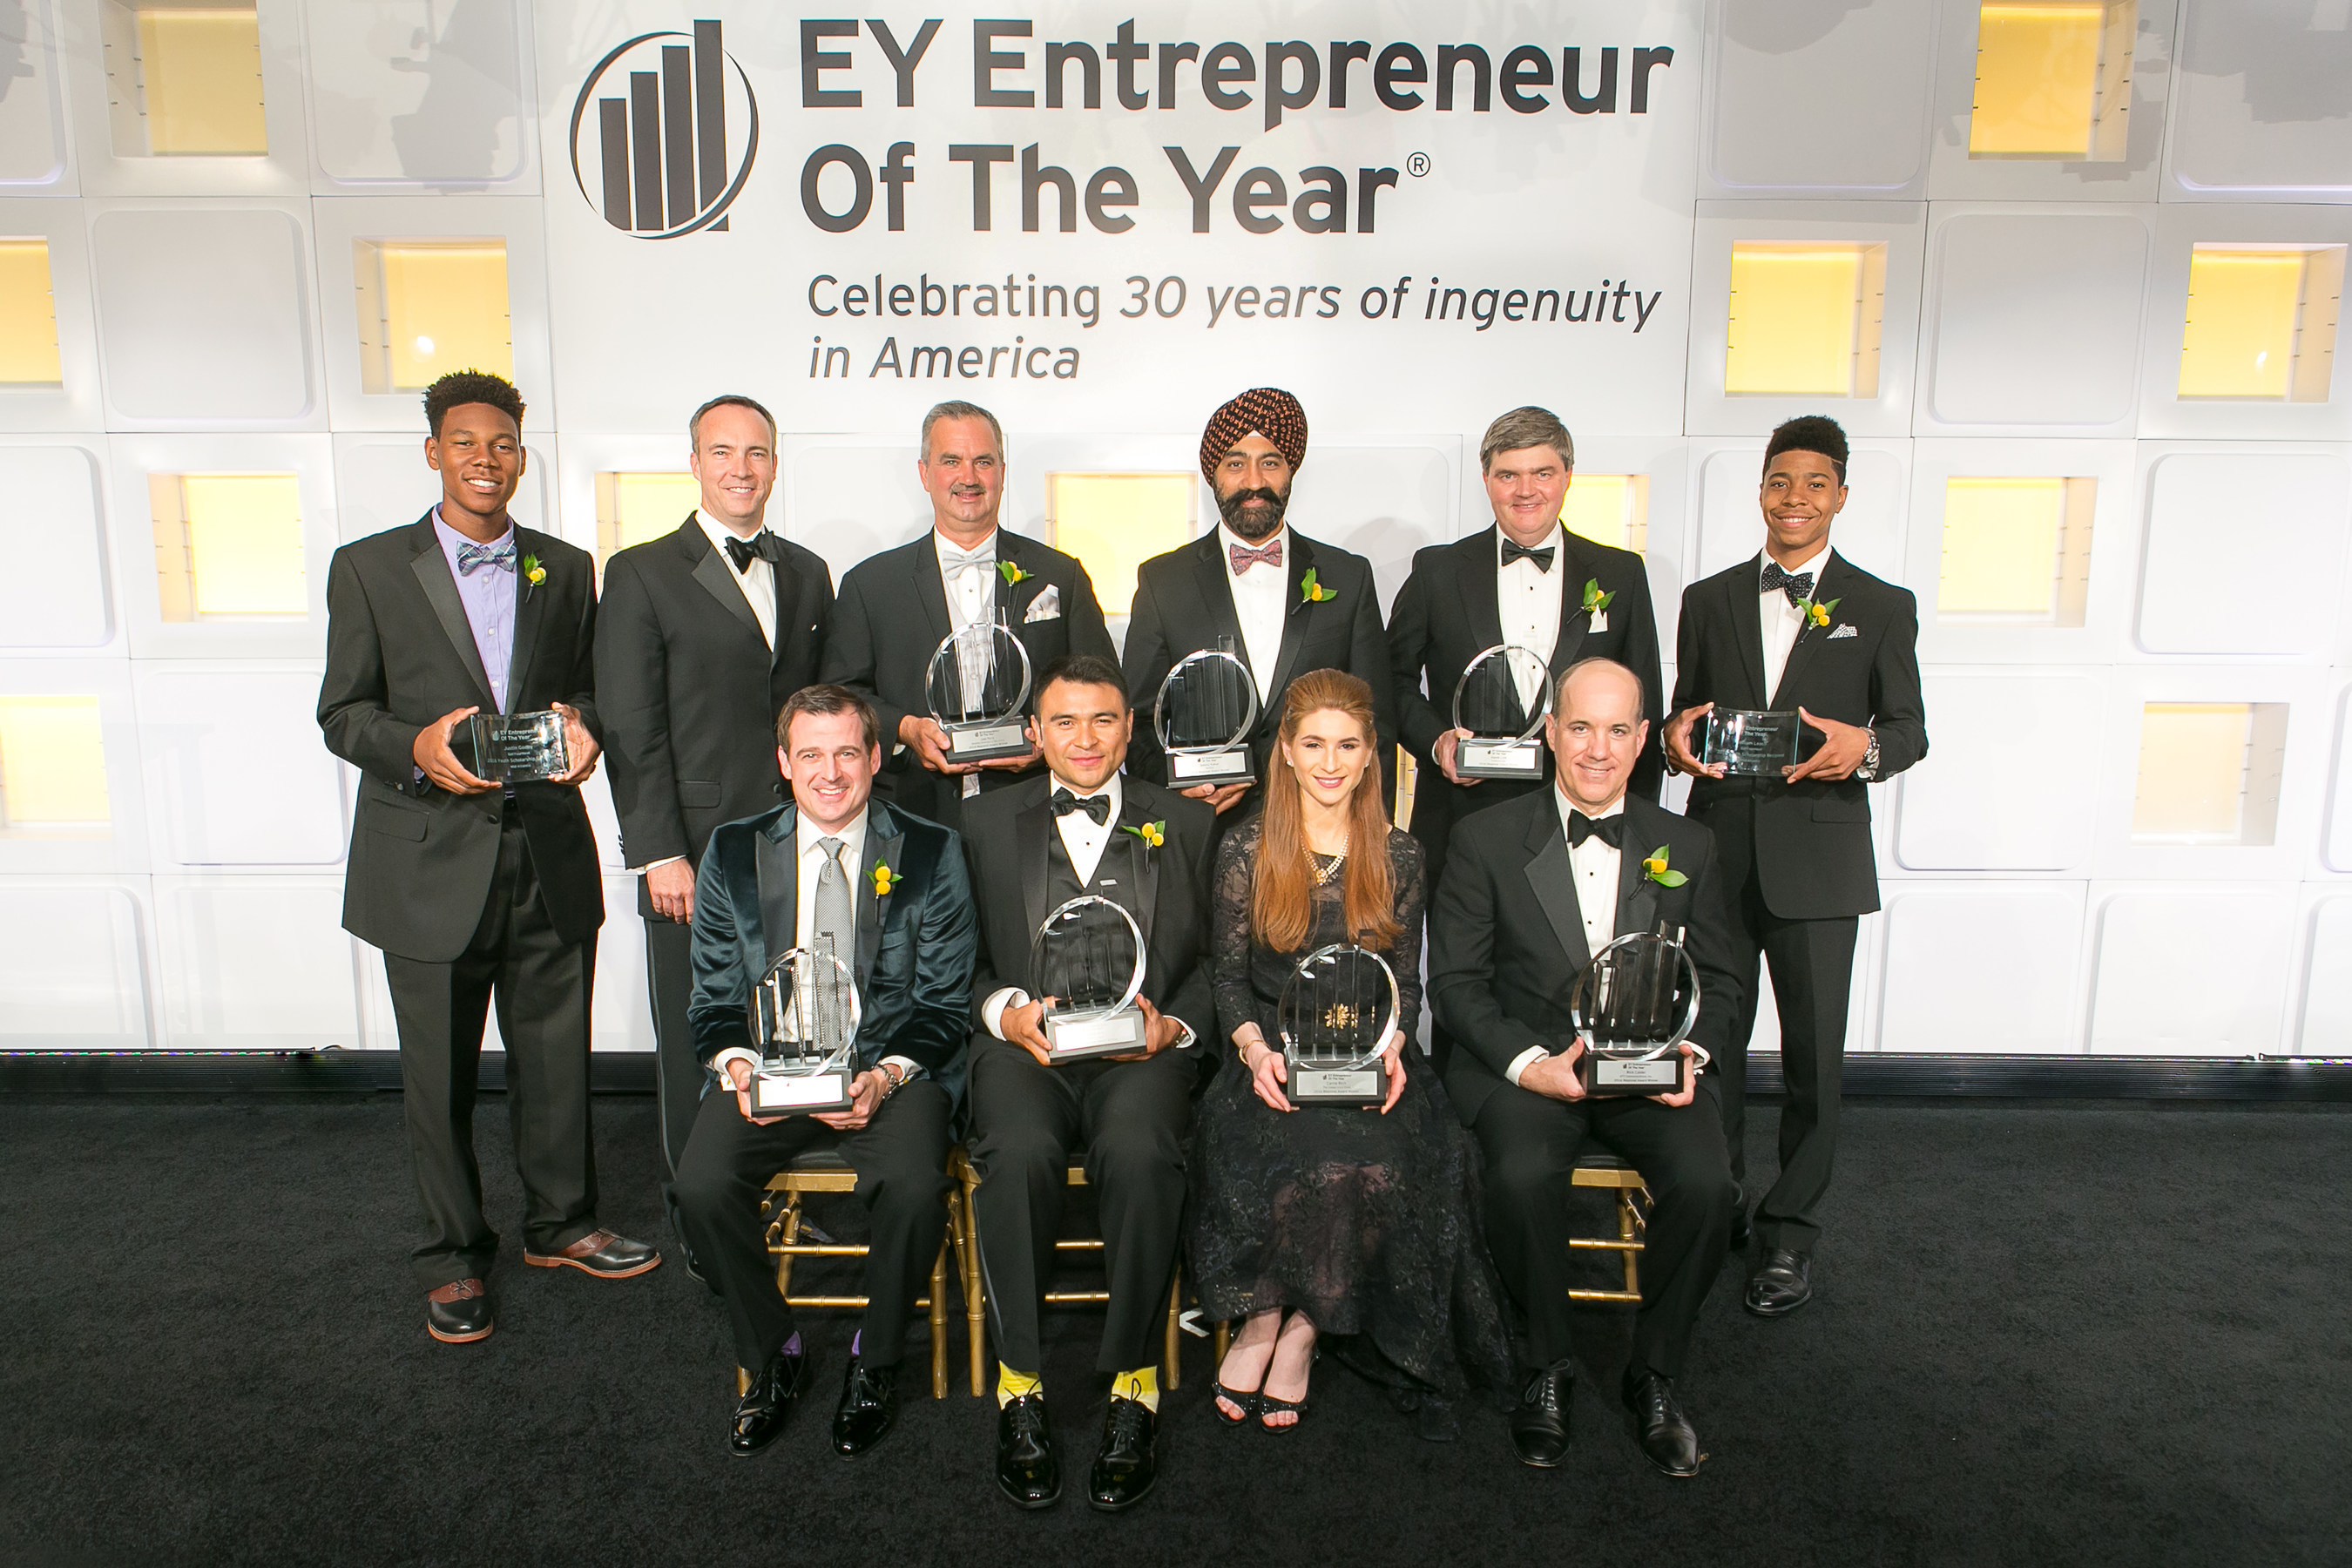 Global Good Fund Co-Founder & CEO, Carrie Rich, named EY Entrepreneur Of The Year(R) 2016 Social Responsibility Award winner in Mid-Atlantic